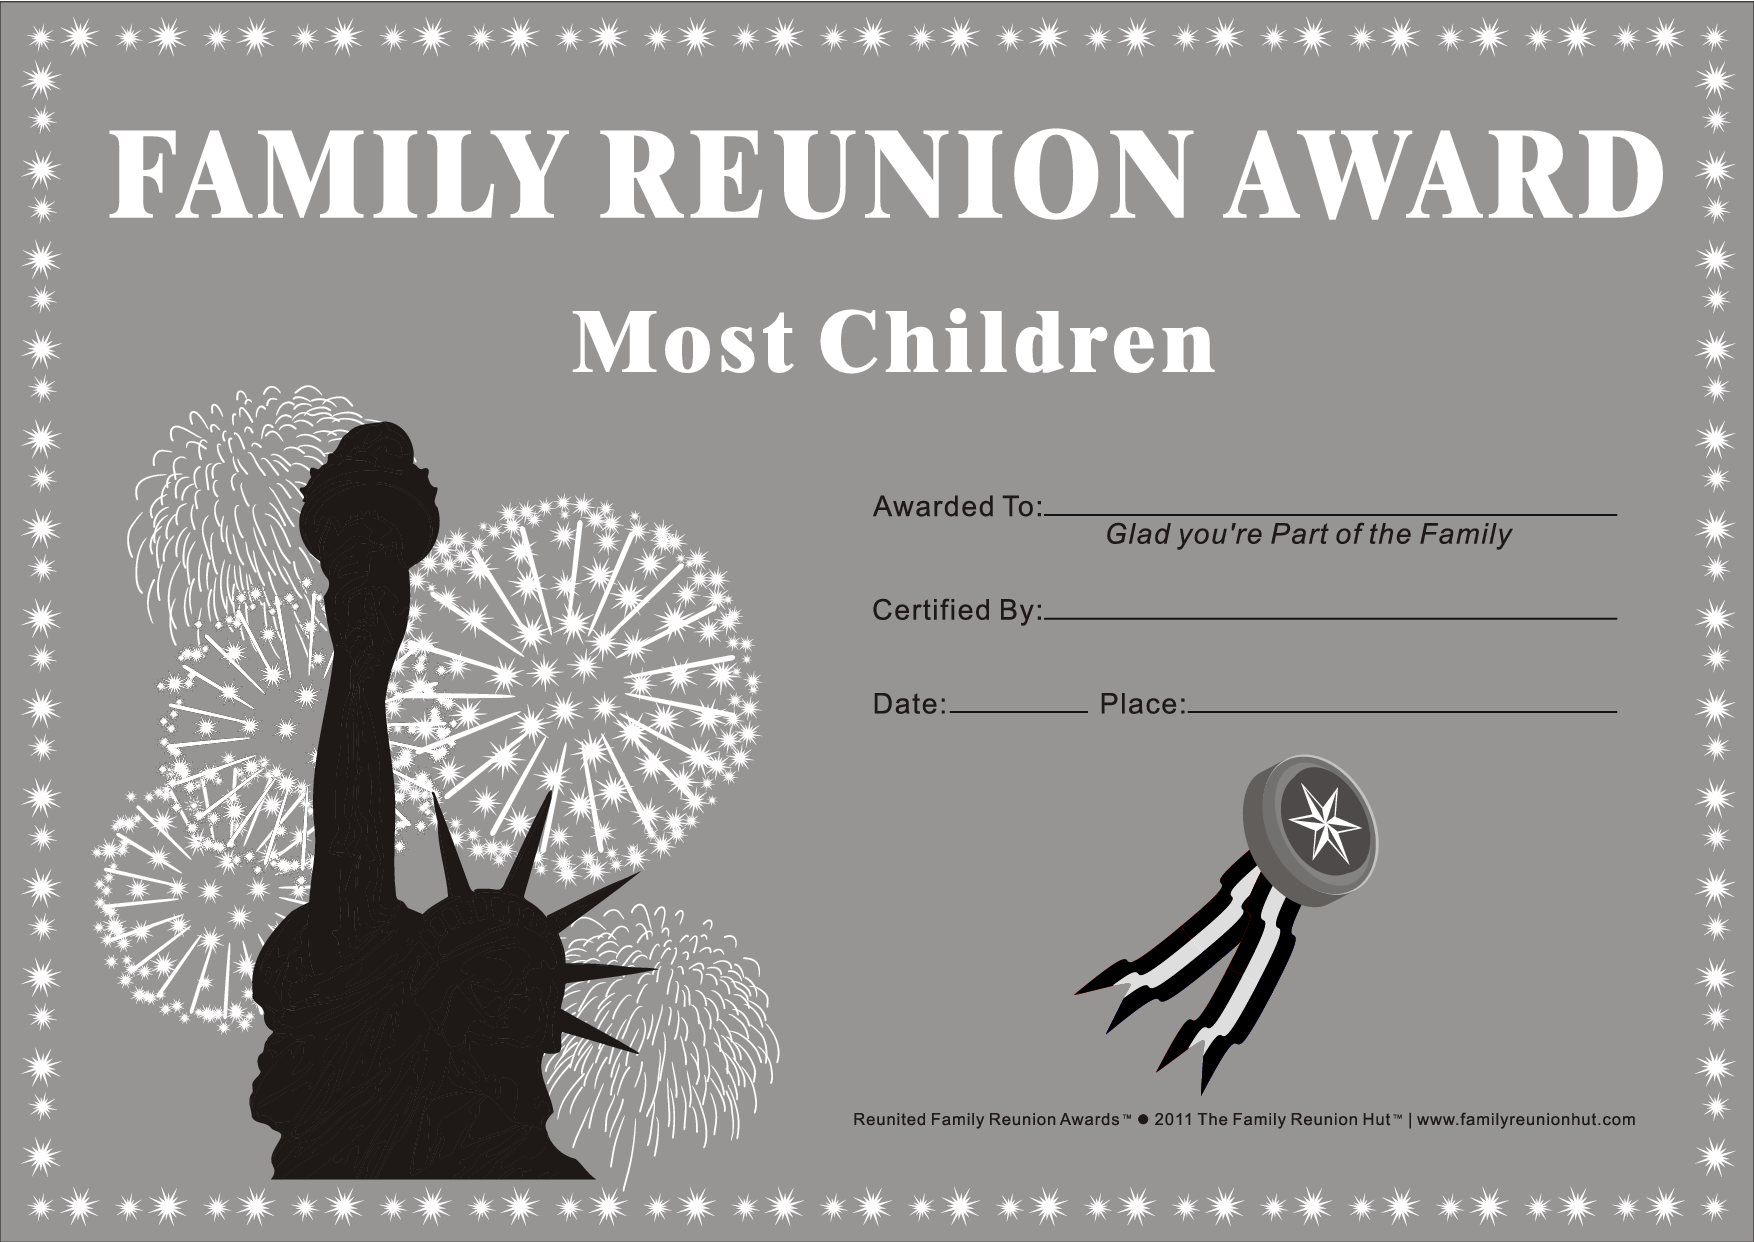 family reunion certificates country pride 17 is a free family reunion award by the family reunion hut by eastgeneral